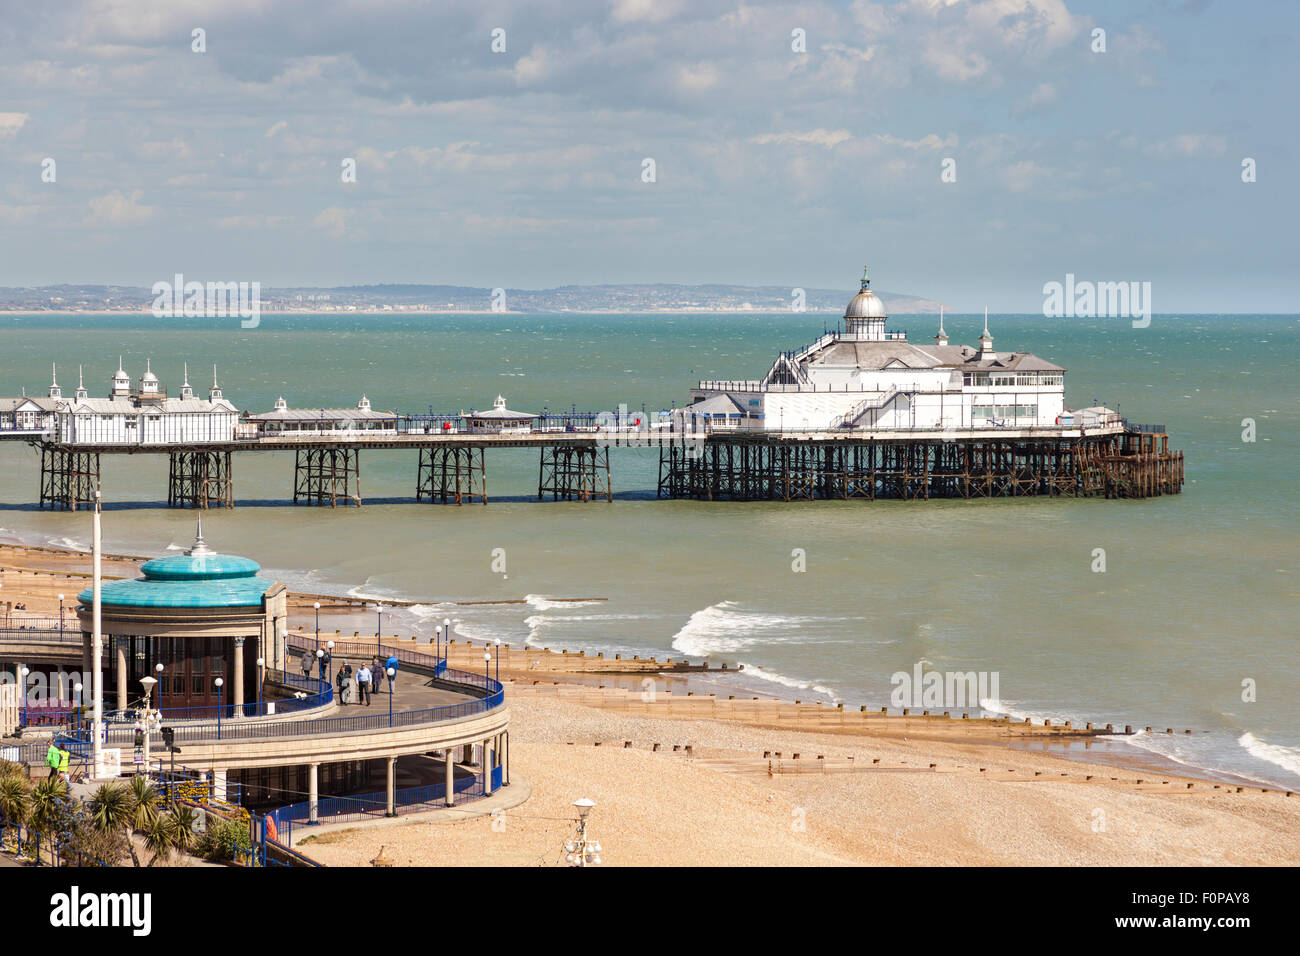 The bandstand, pier and beach, Eastbourne, East Sussex, England - Stock Image